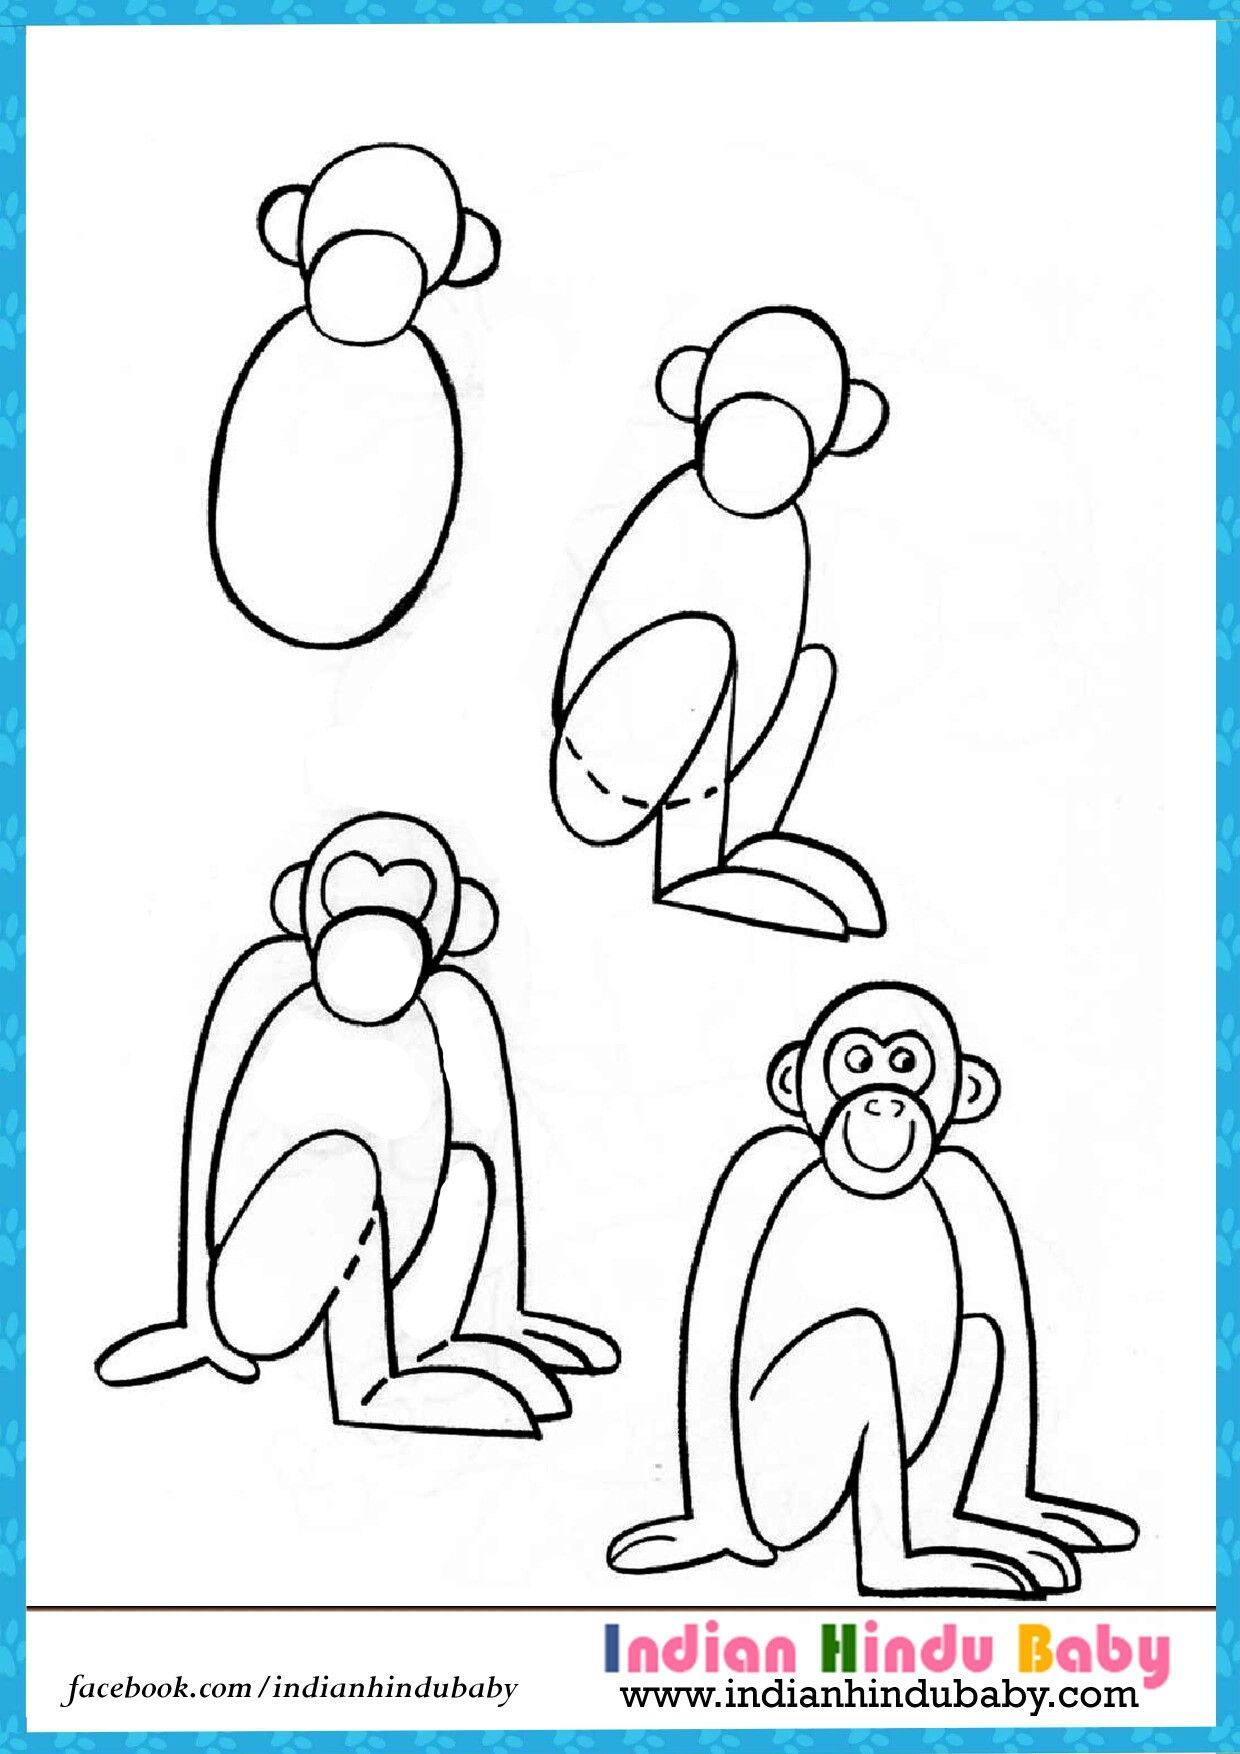 teach your kid to draw monkey with simple drawing tips https - Simple Drawing For Kid